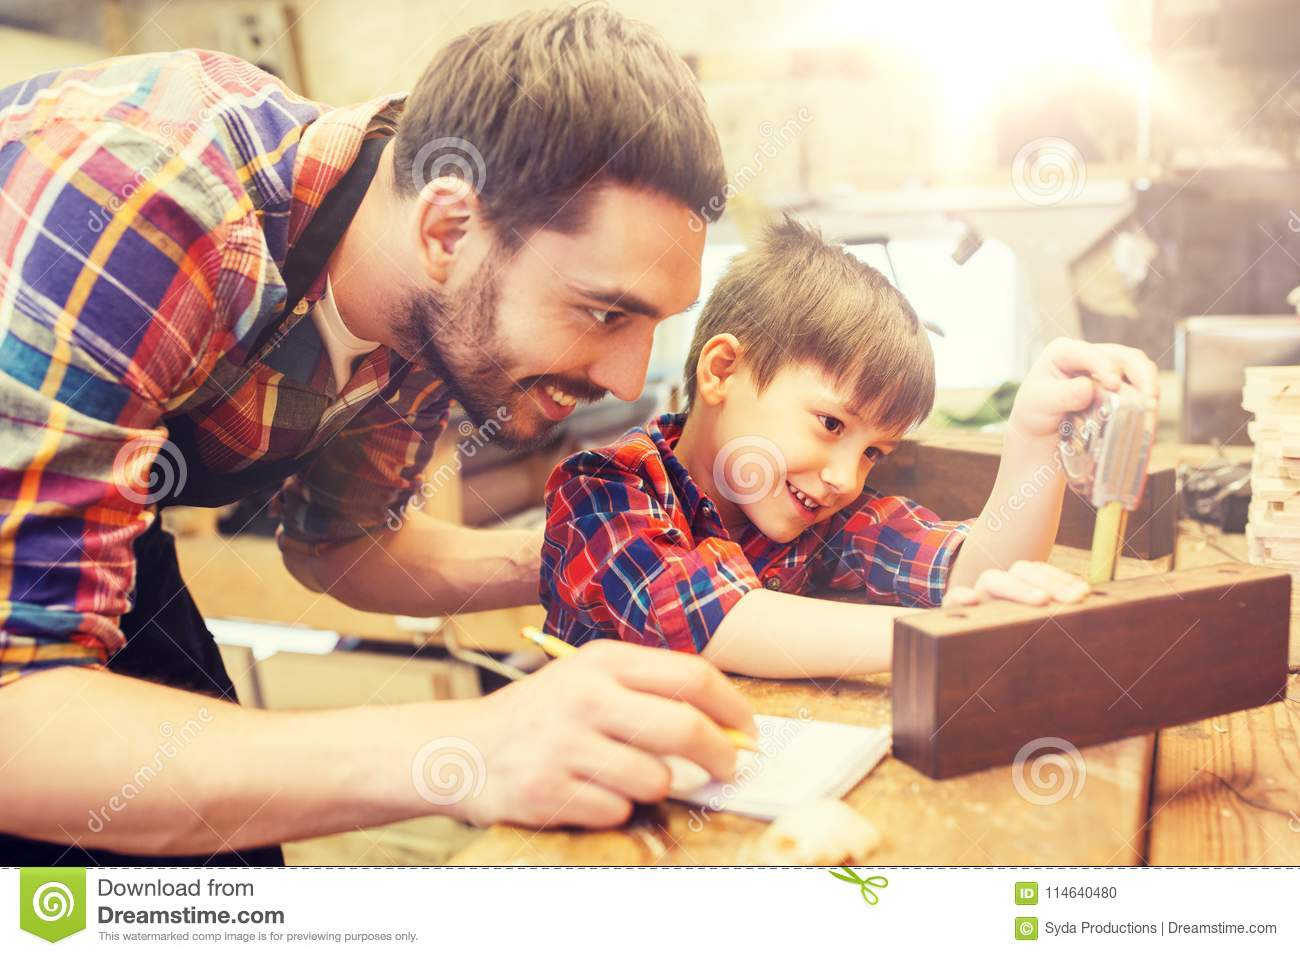 Dad and son with ruler measuring plank at workshop